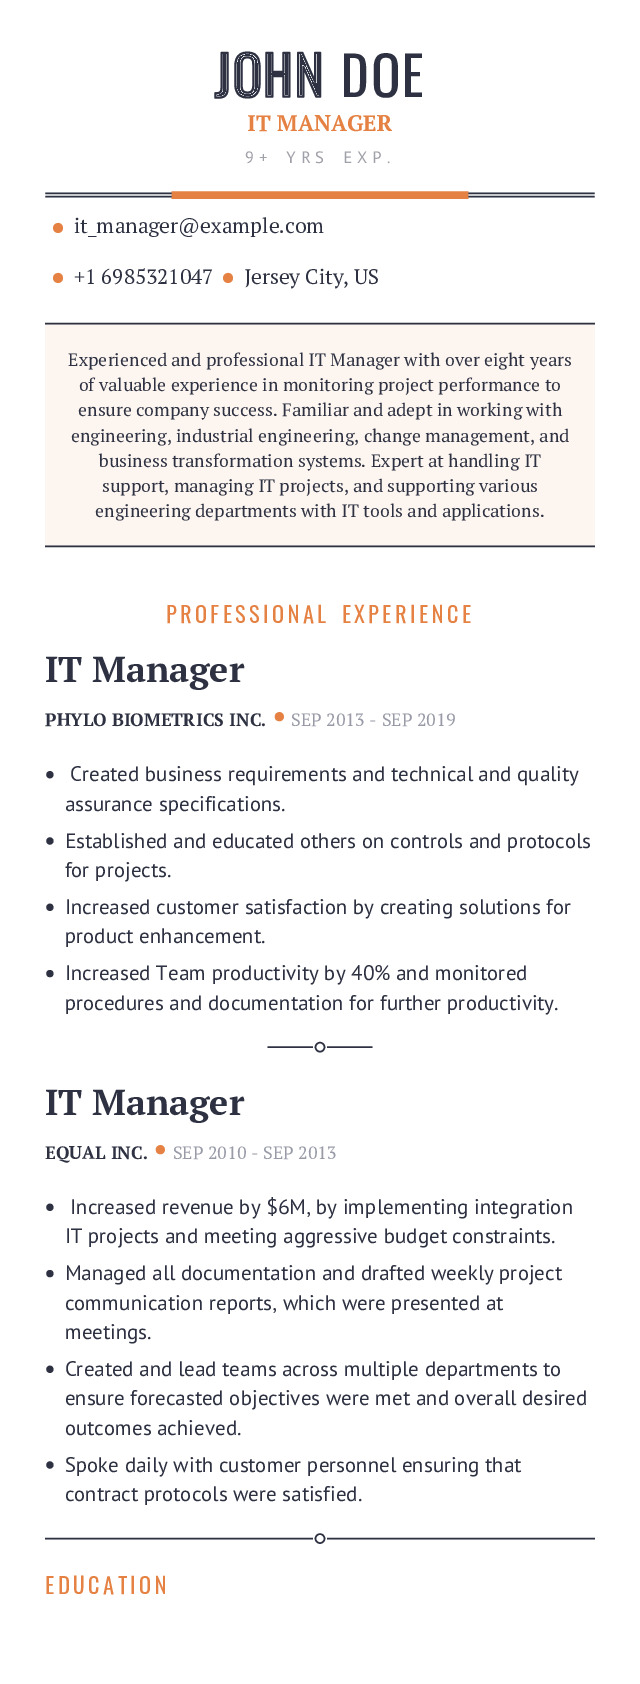 IT Manager Mobile Resume Example